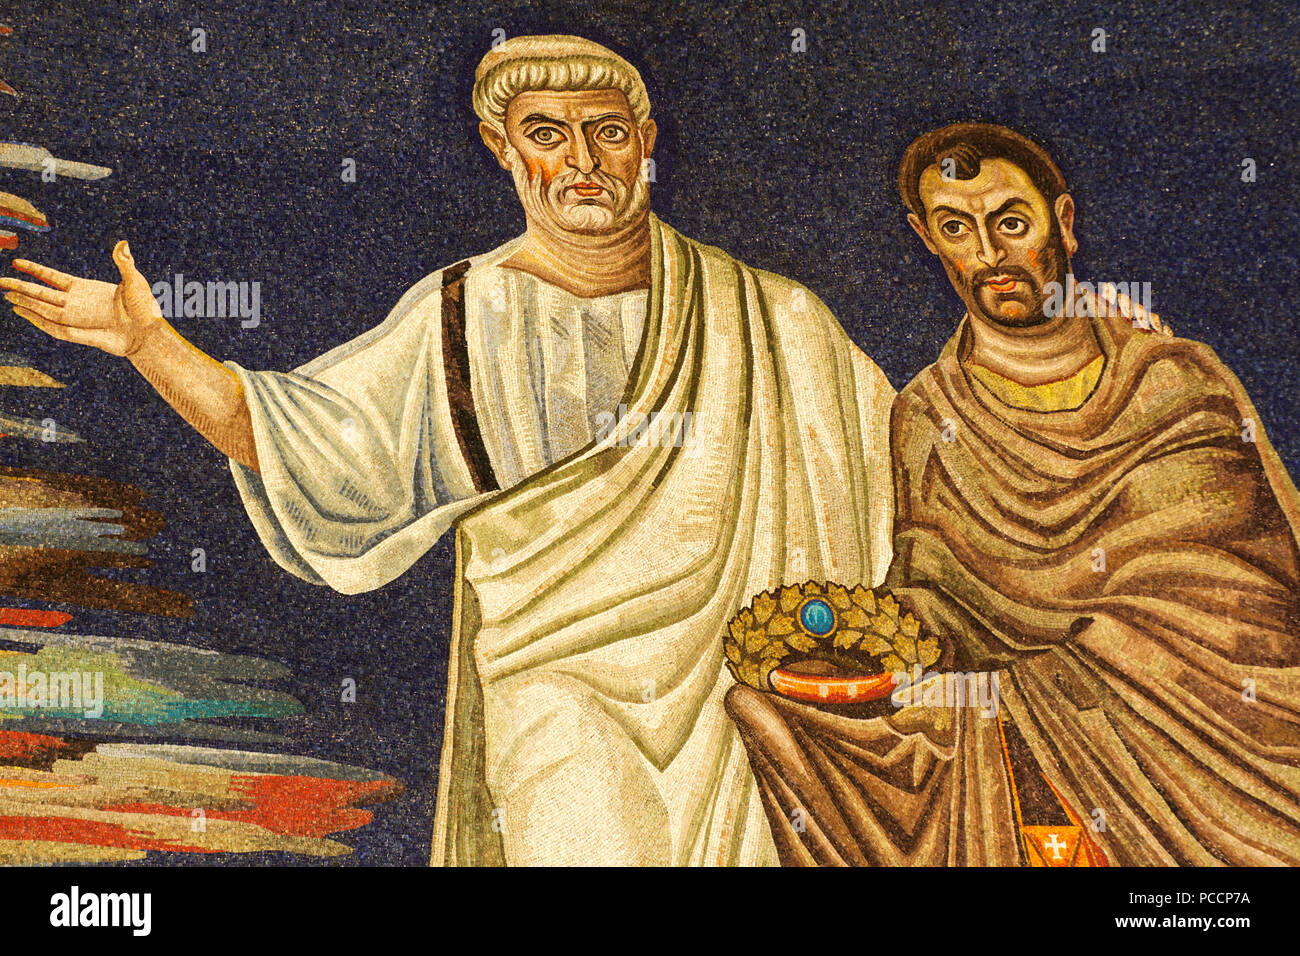 St Peter presenting St Cosmas - Detail of the 6th century apse mosaic (530 AC), Masterpiece of the early Christian Art, Basilica of SS Cosma e Damiano Stock Photo